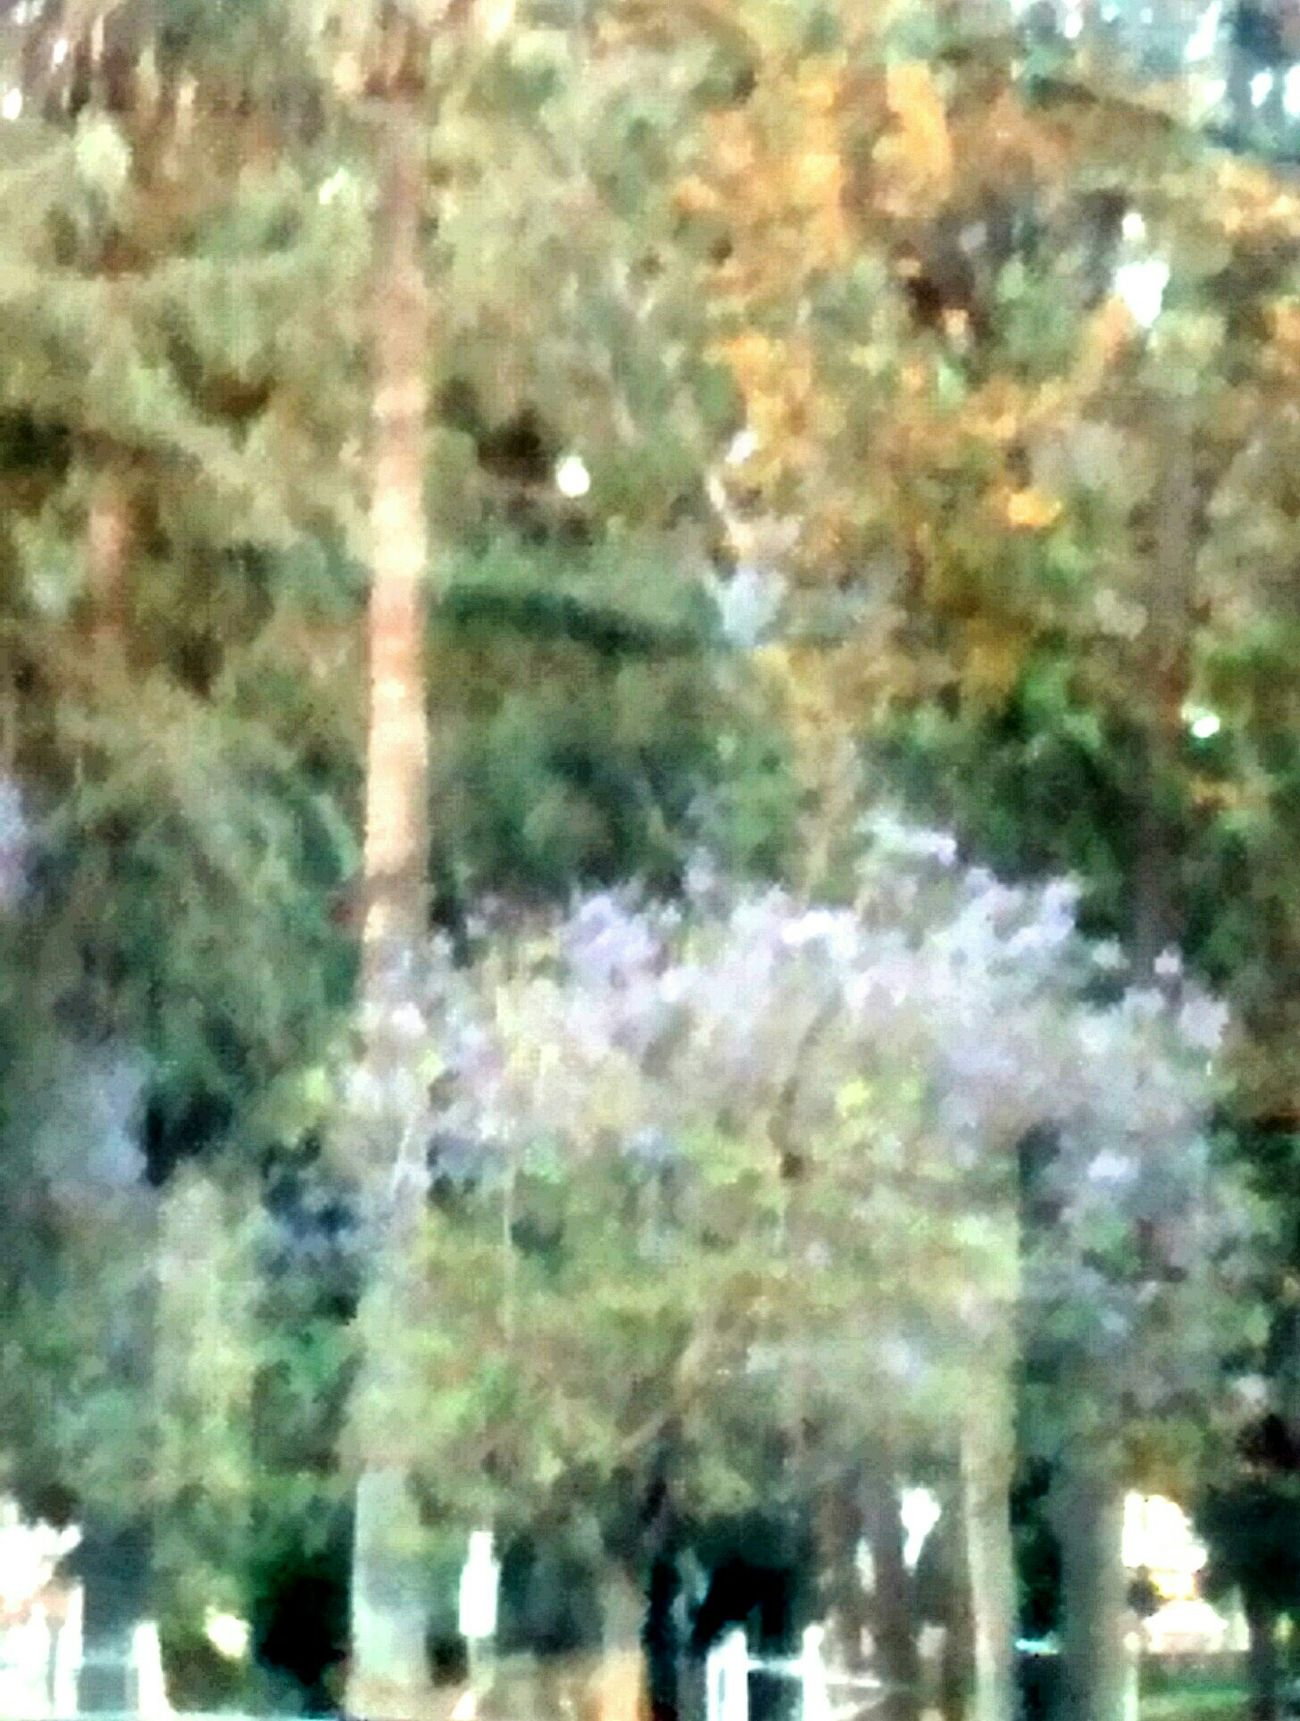 Do you see the various colors of the trees......